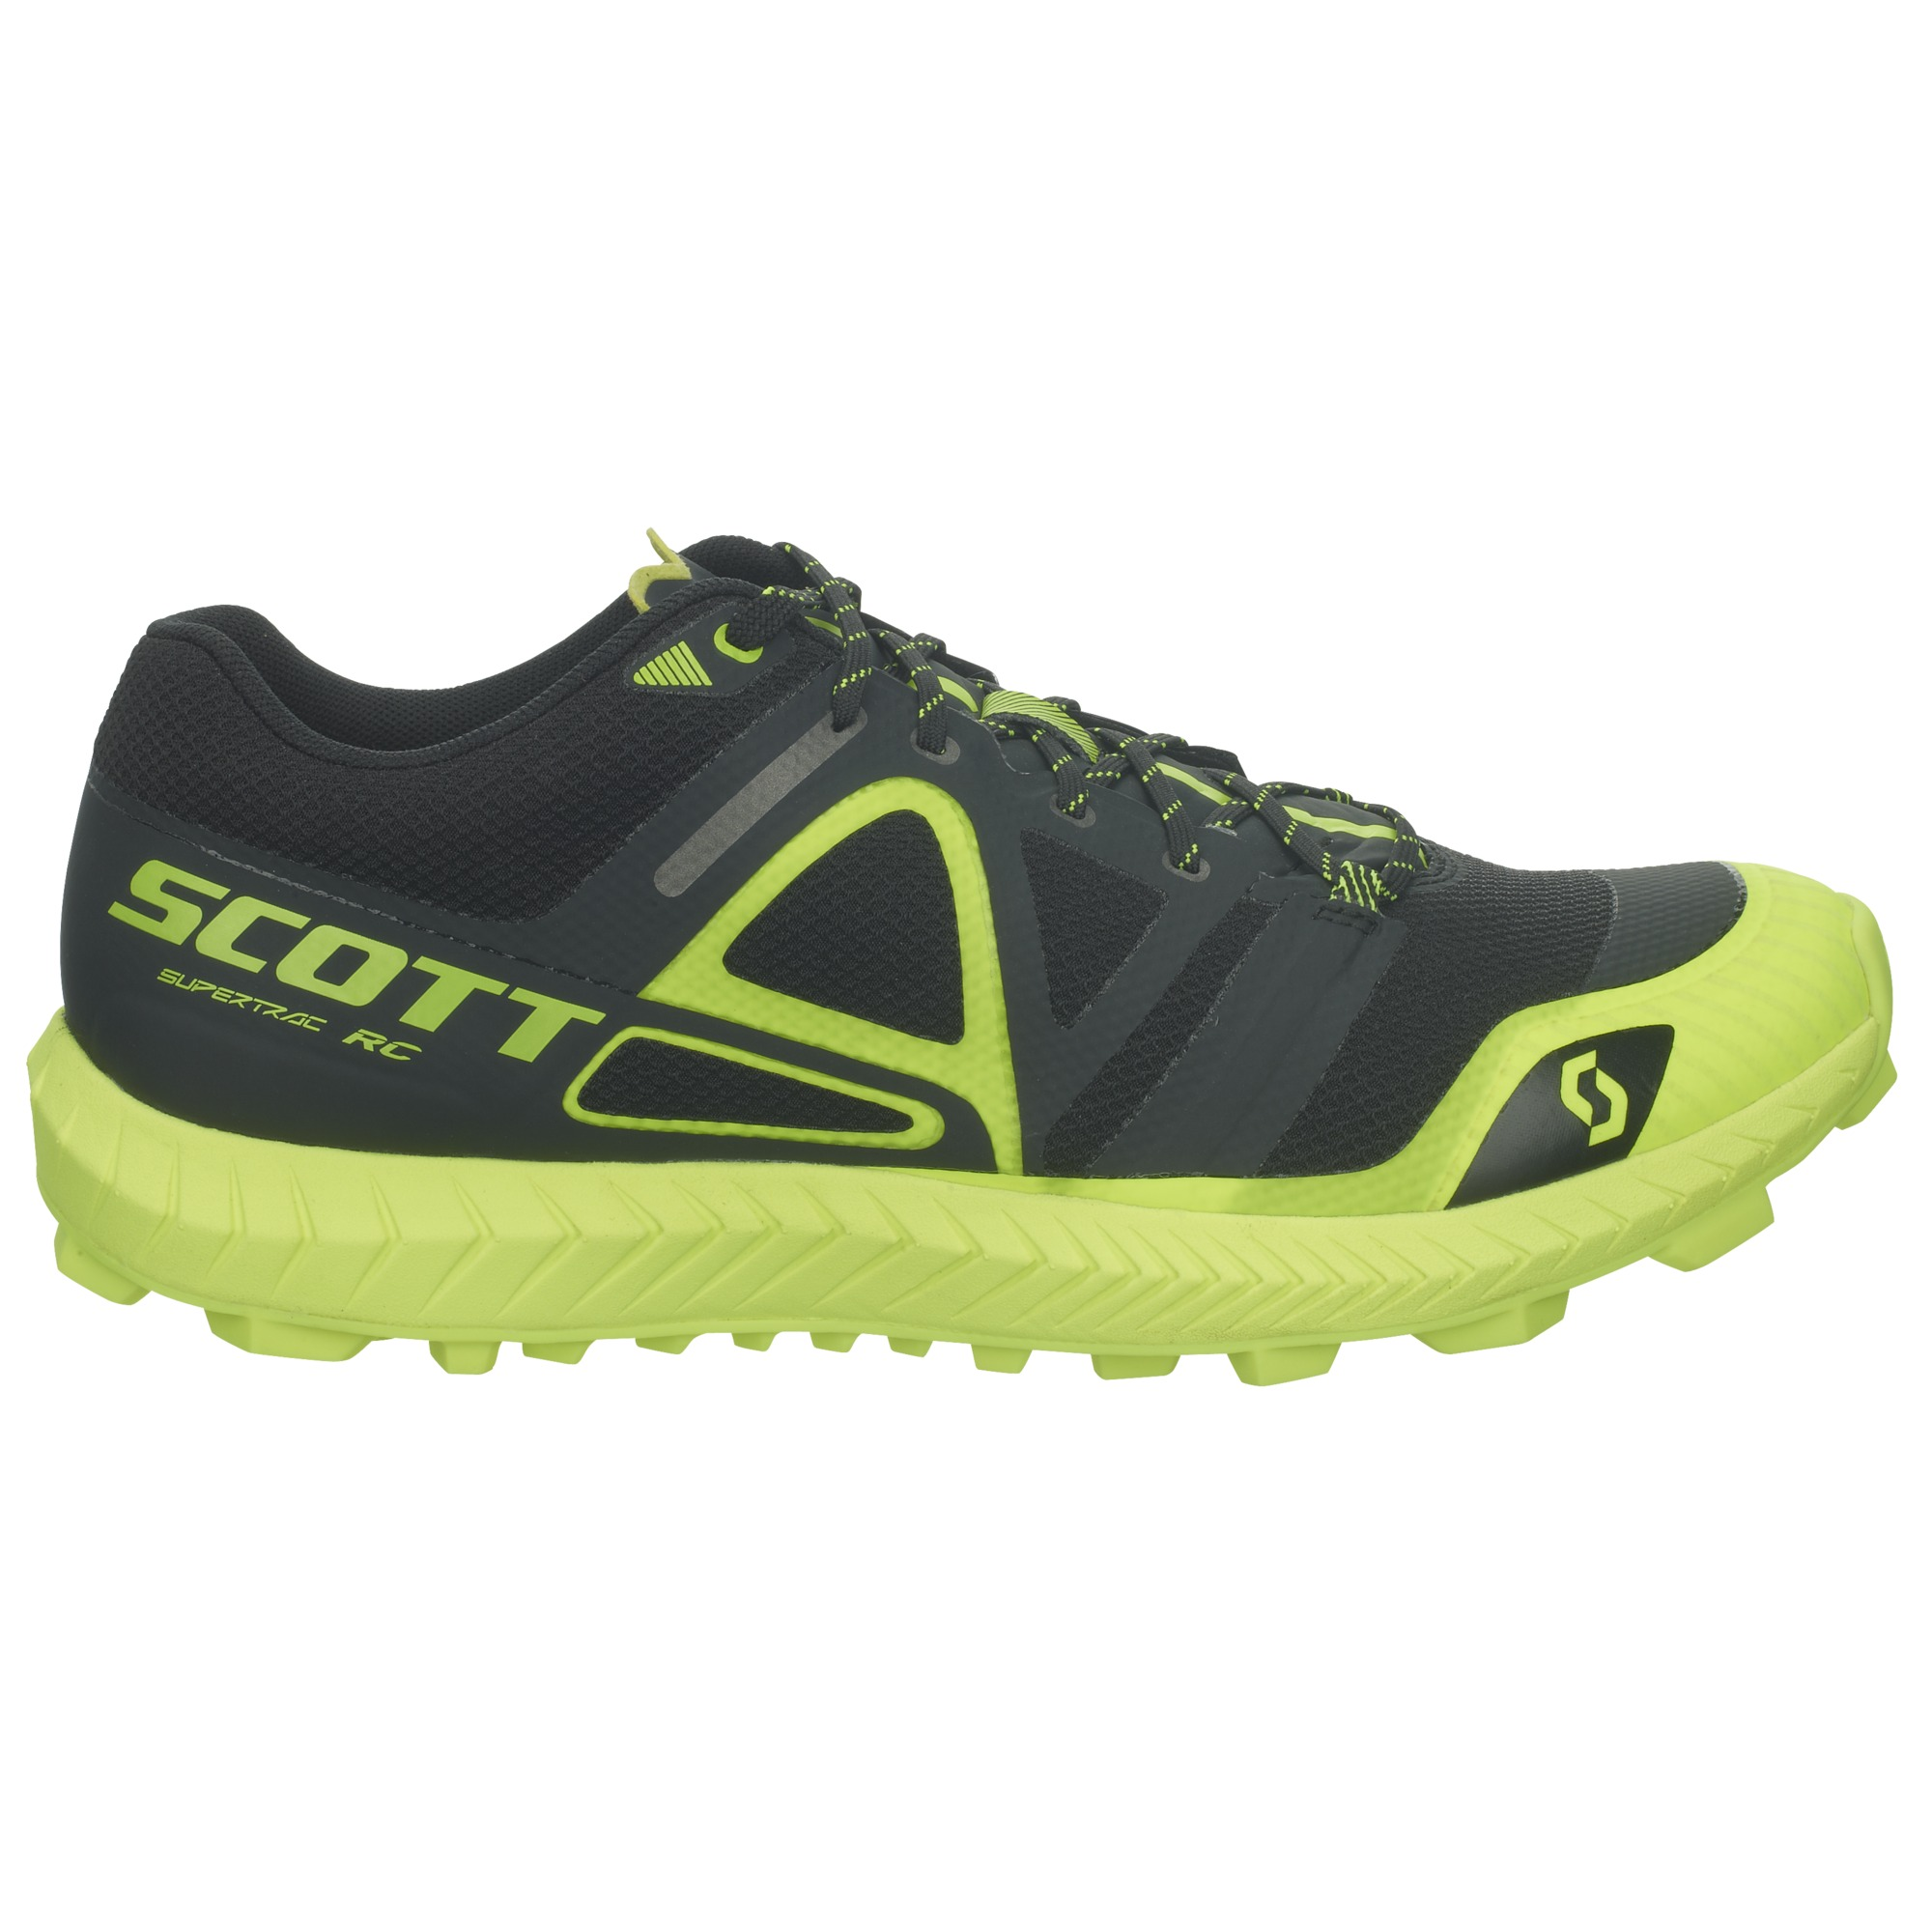 SCOTT Supertrac RC Women's Shoe